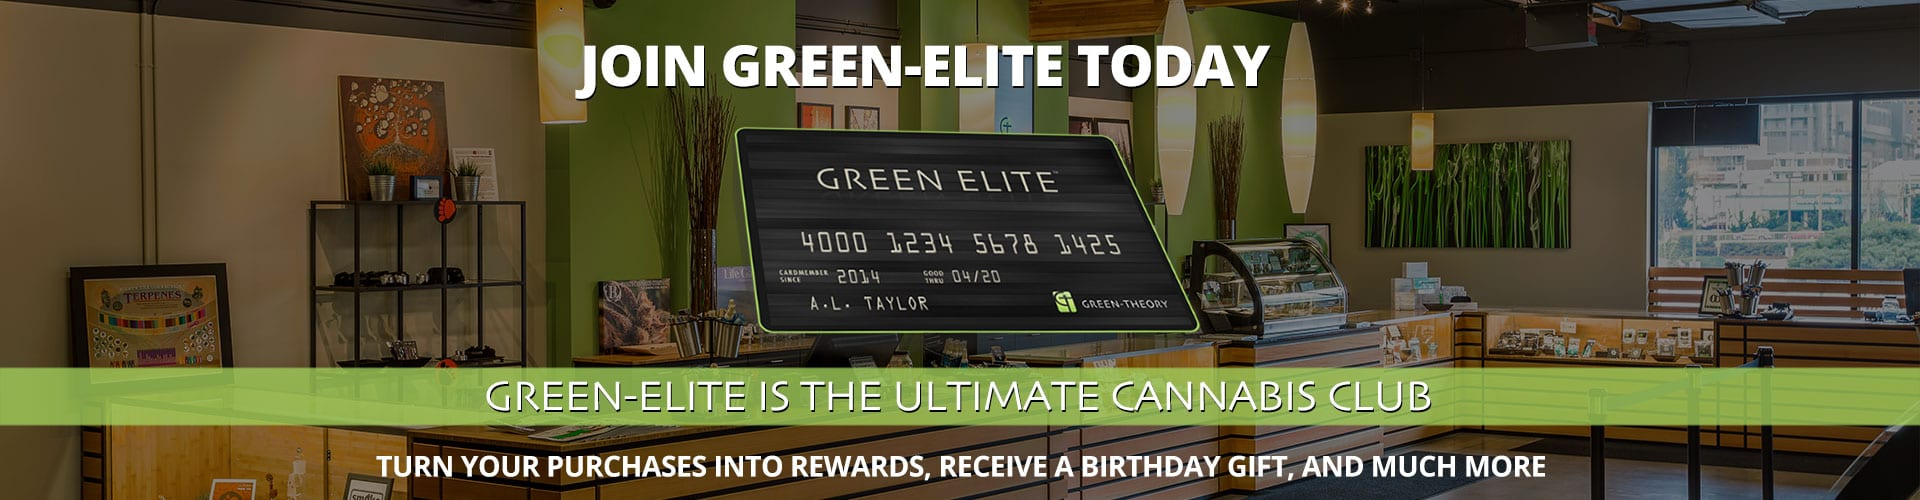 join-green-elite1